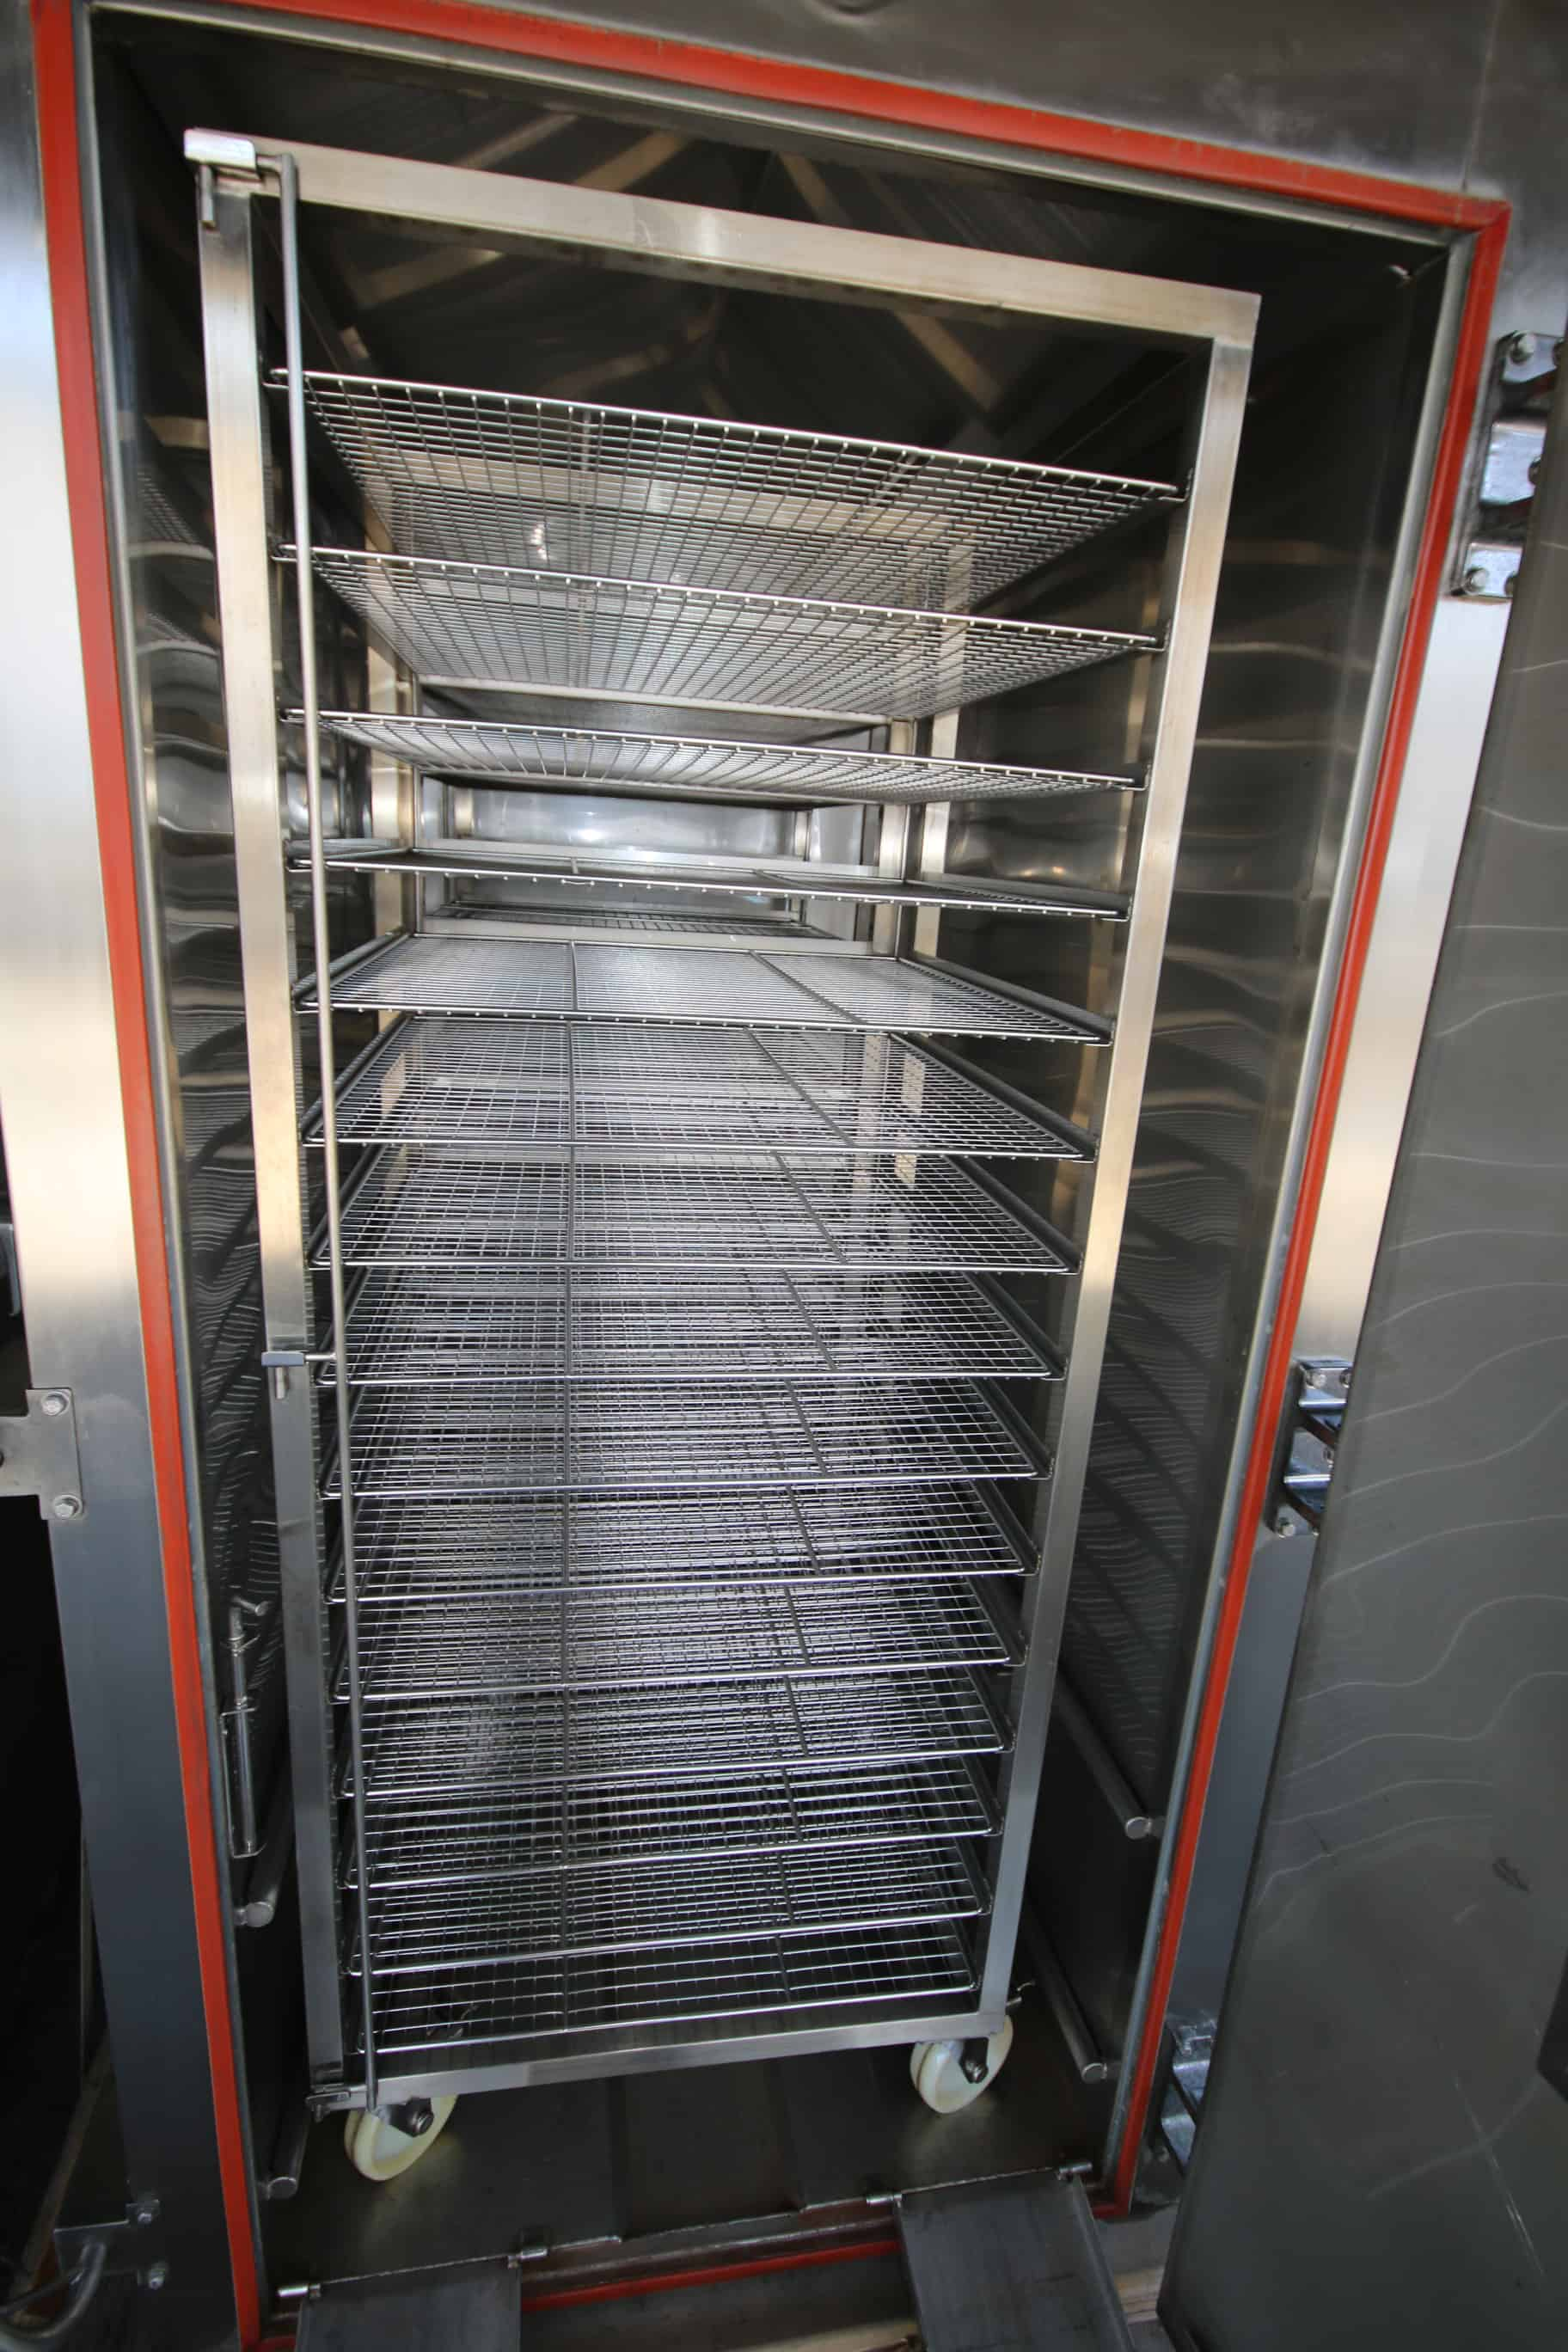 NEW Yuan Jaan S/S Double Rack Oven, M/N KS-702, with (2) S/S 15-Shelf Portable Racks, 220 Volts